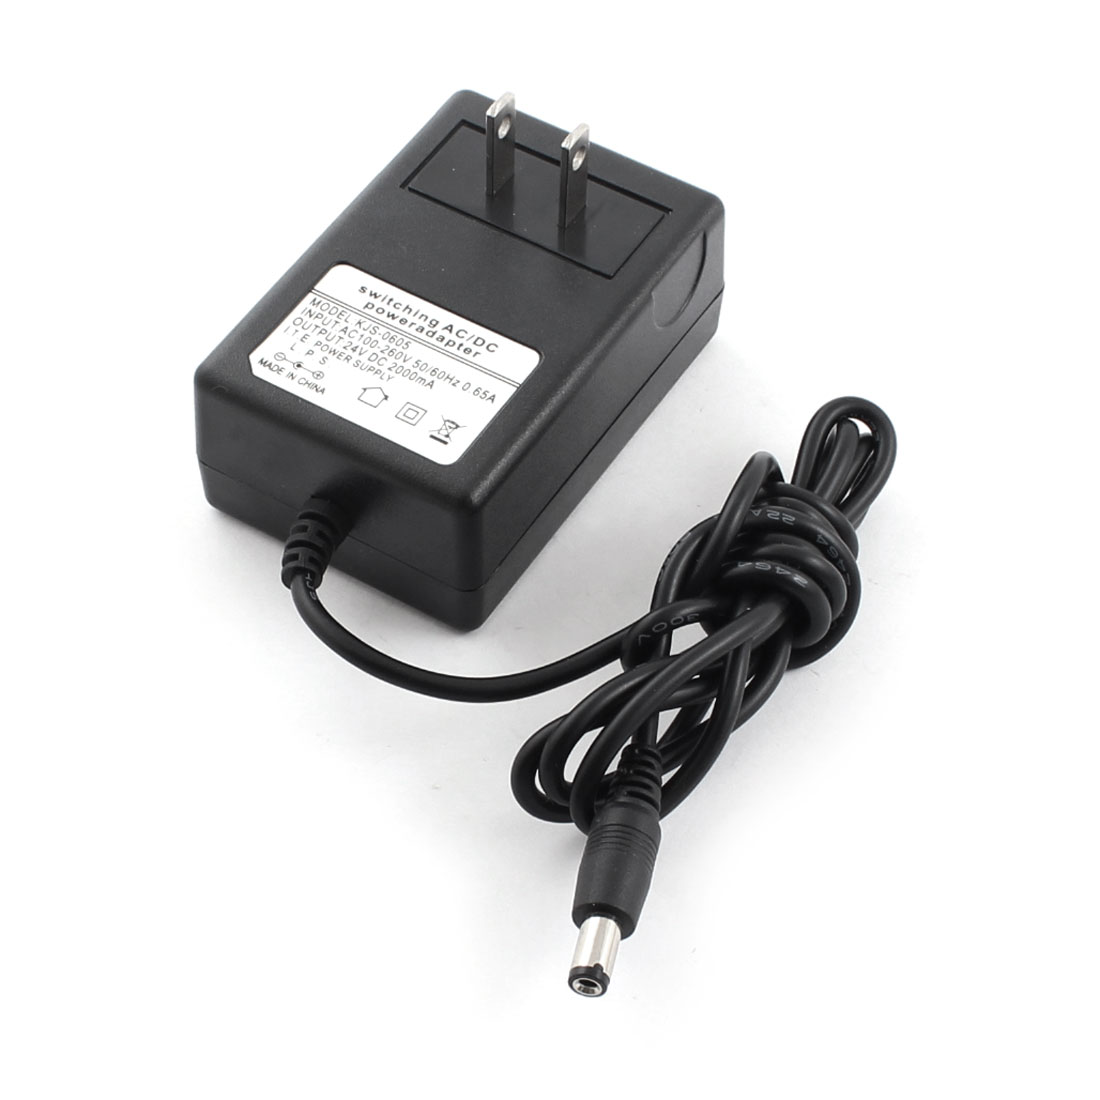 AC100-260V 0.65A US Plug to DC24V 2000mA 5.5mm x 2.1mm Power Adapter Extension Cable 4Ft